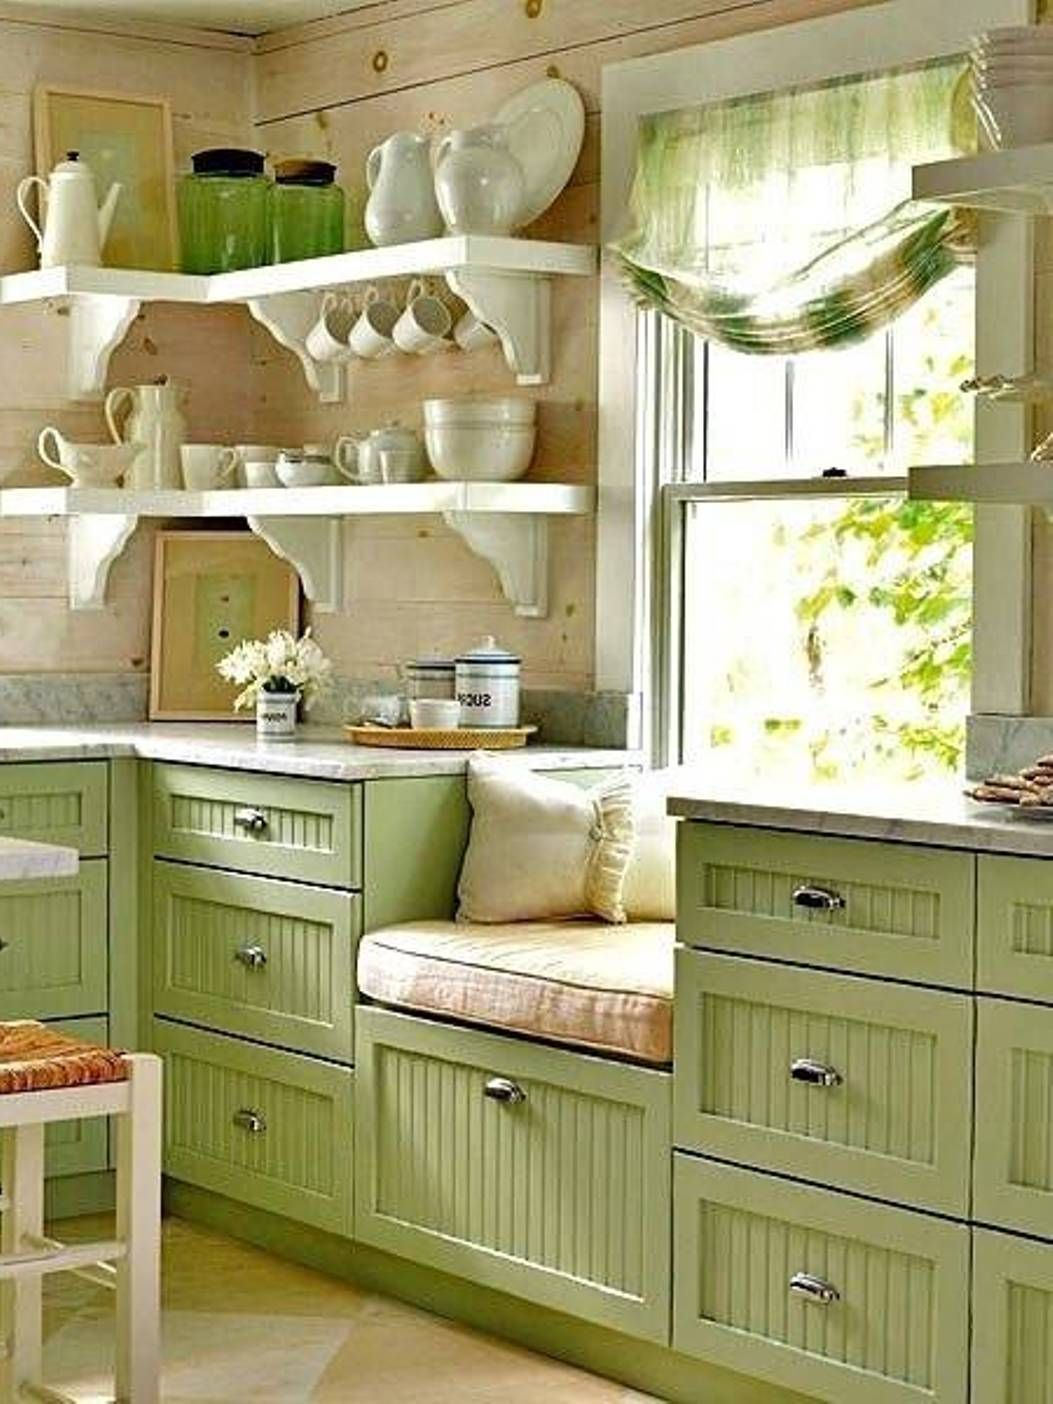 Pin By Xayvar On Design Inspiration Cottage Kitchen Design Kitchen Design Small Kitchen Style